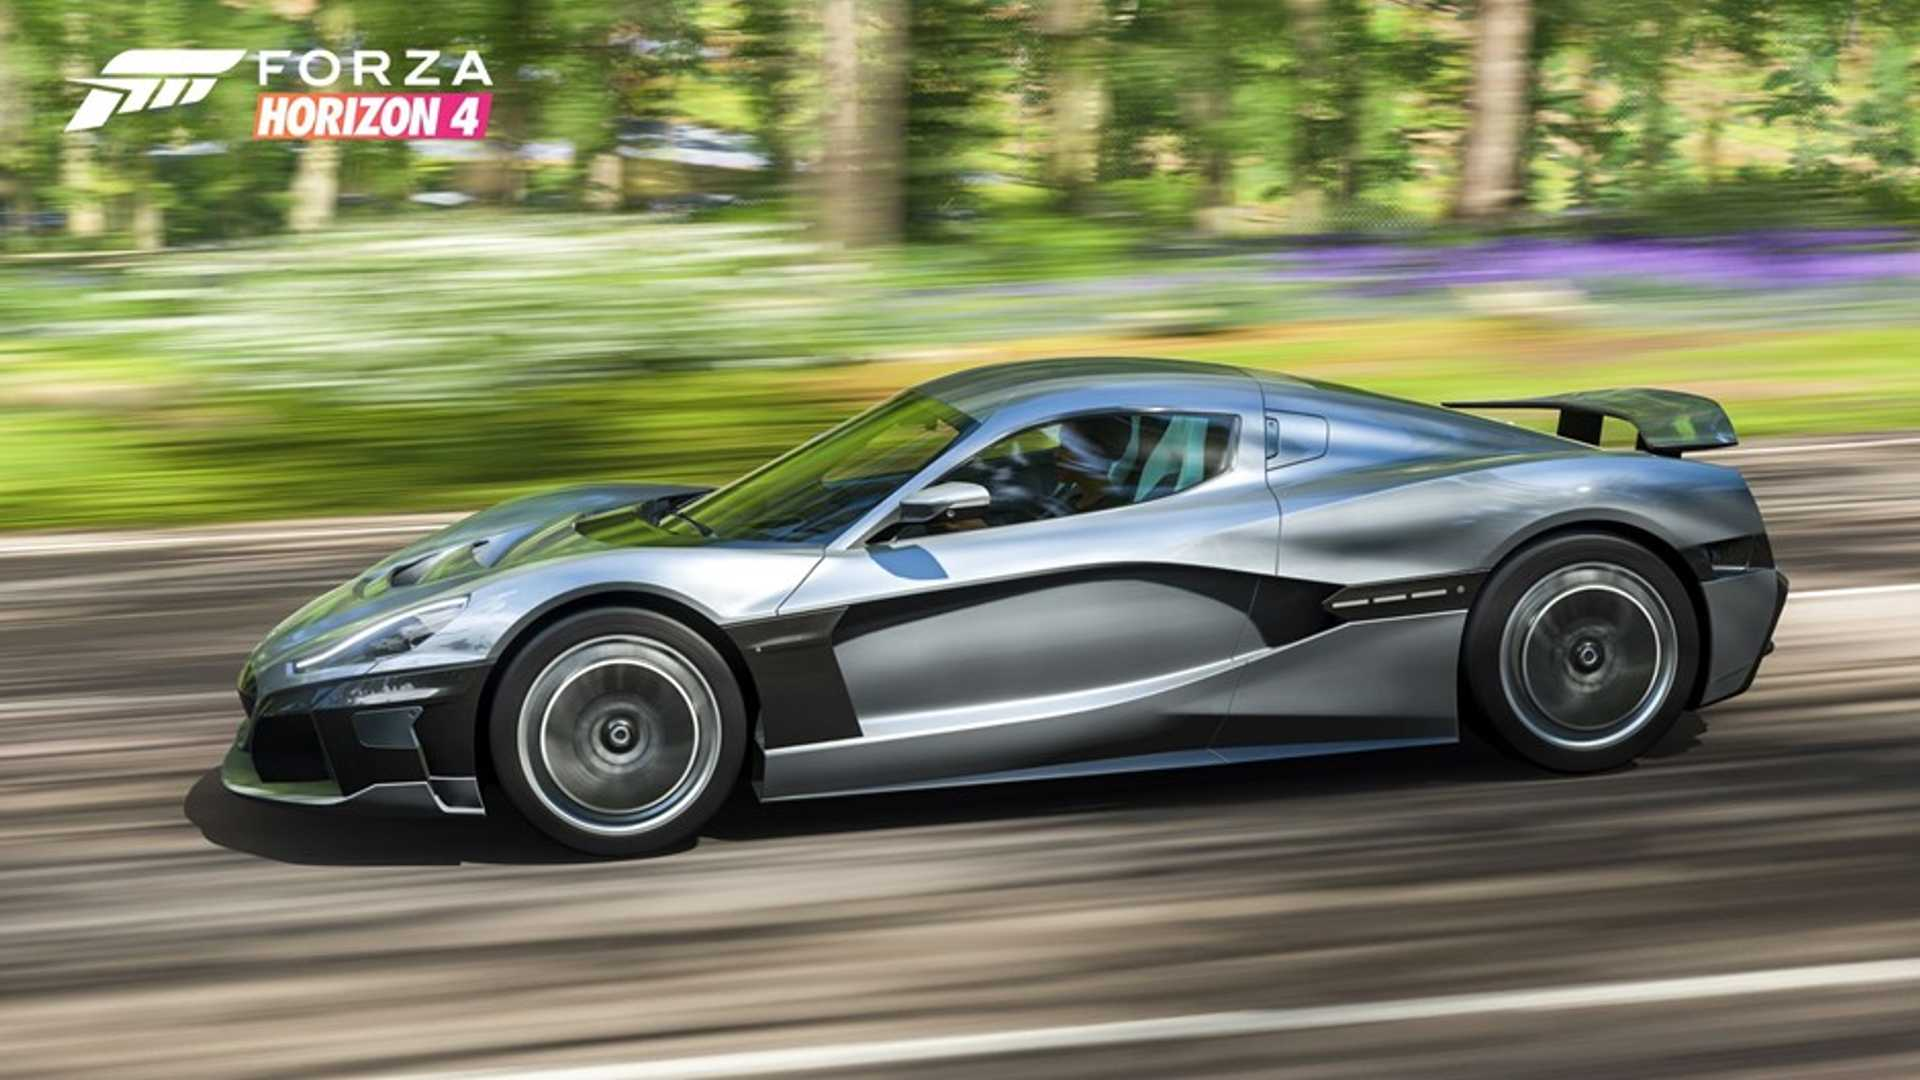 rimac-c-two-at-forza-horizon-4-2